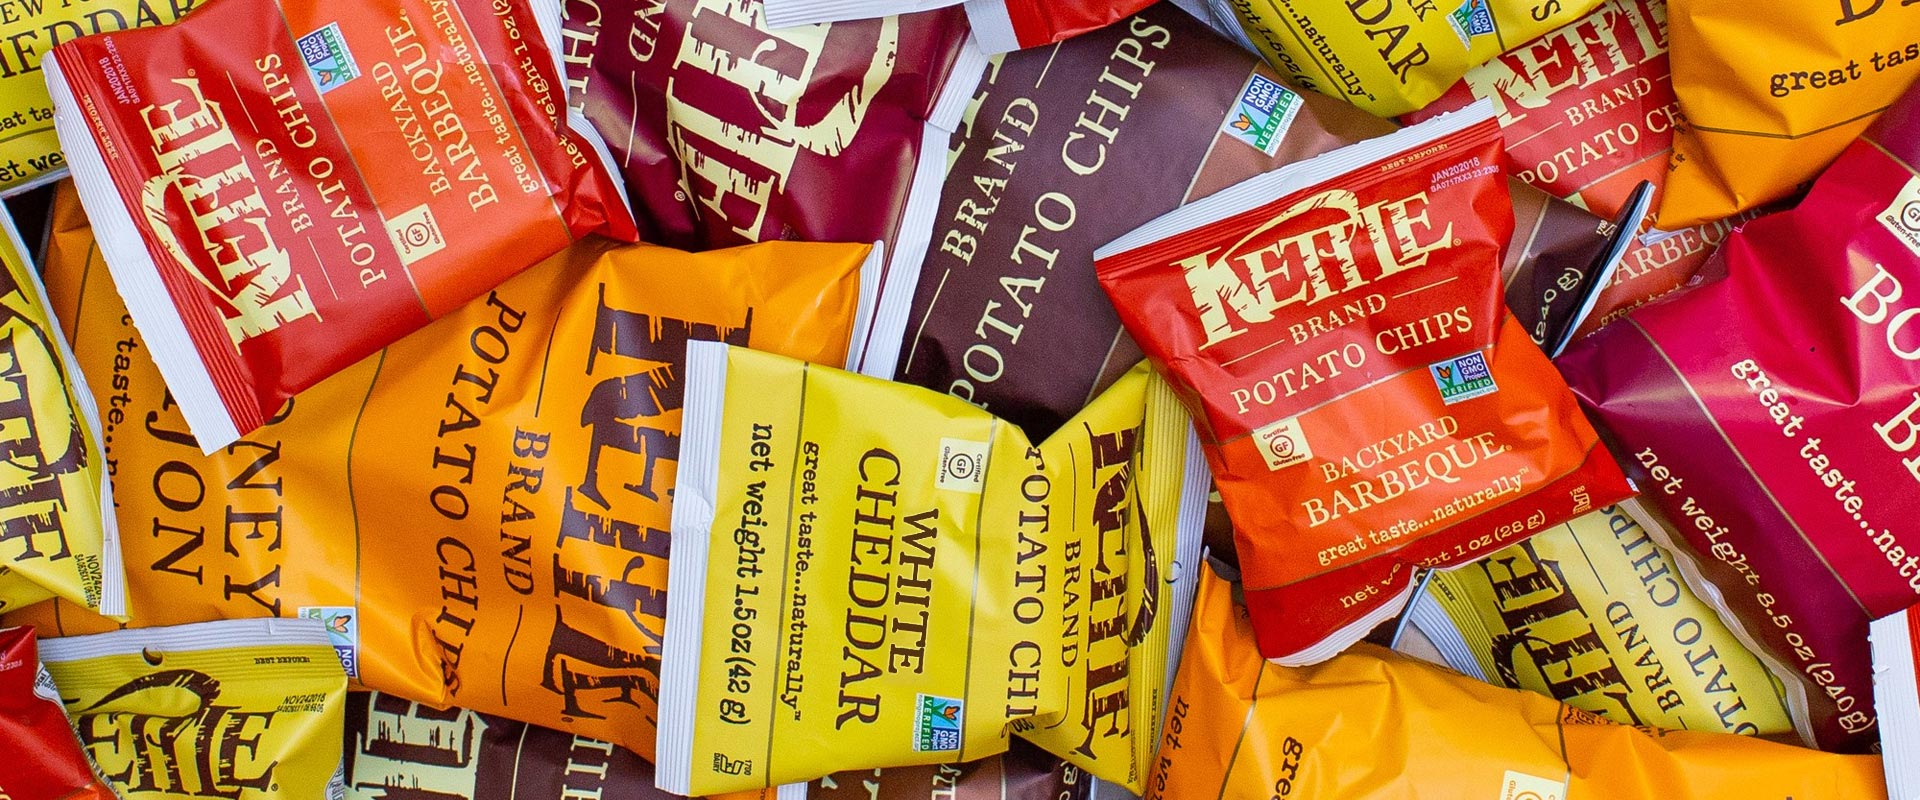 News_Kettle-Brand-Potato-Chips-White-Cheddar-New-Flavour_Banner